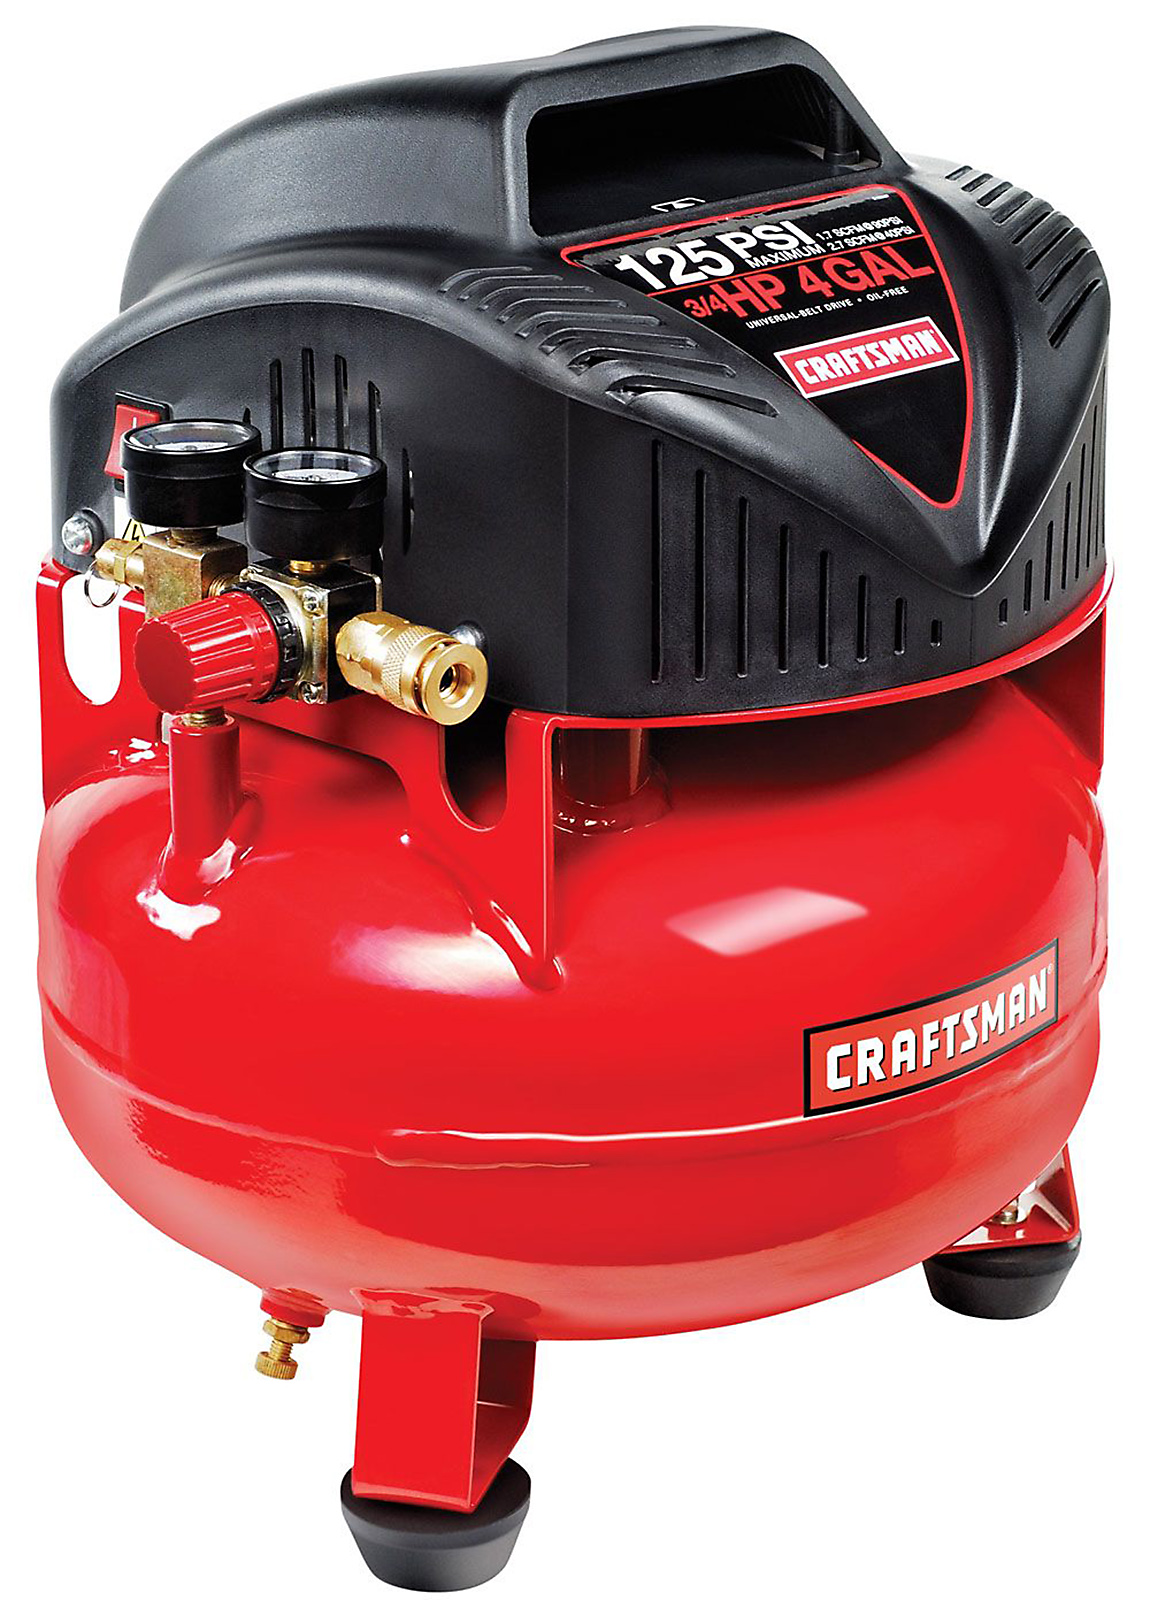 medium resolution of craftsman 4 gallon 0 75 hp oil free pancake air compressor 125 max psi gma c compressor wiring diagram sears air compressor wiring diagram